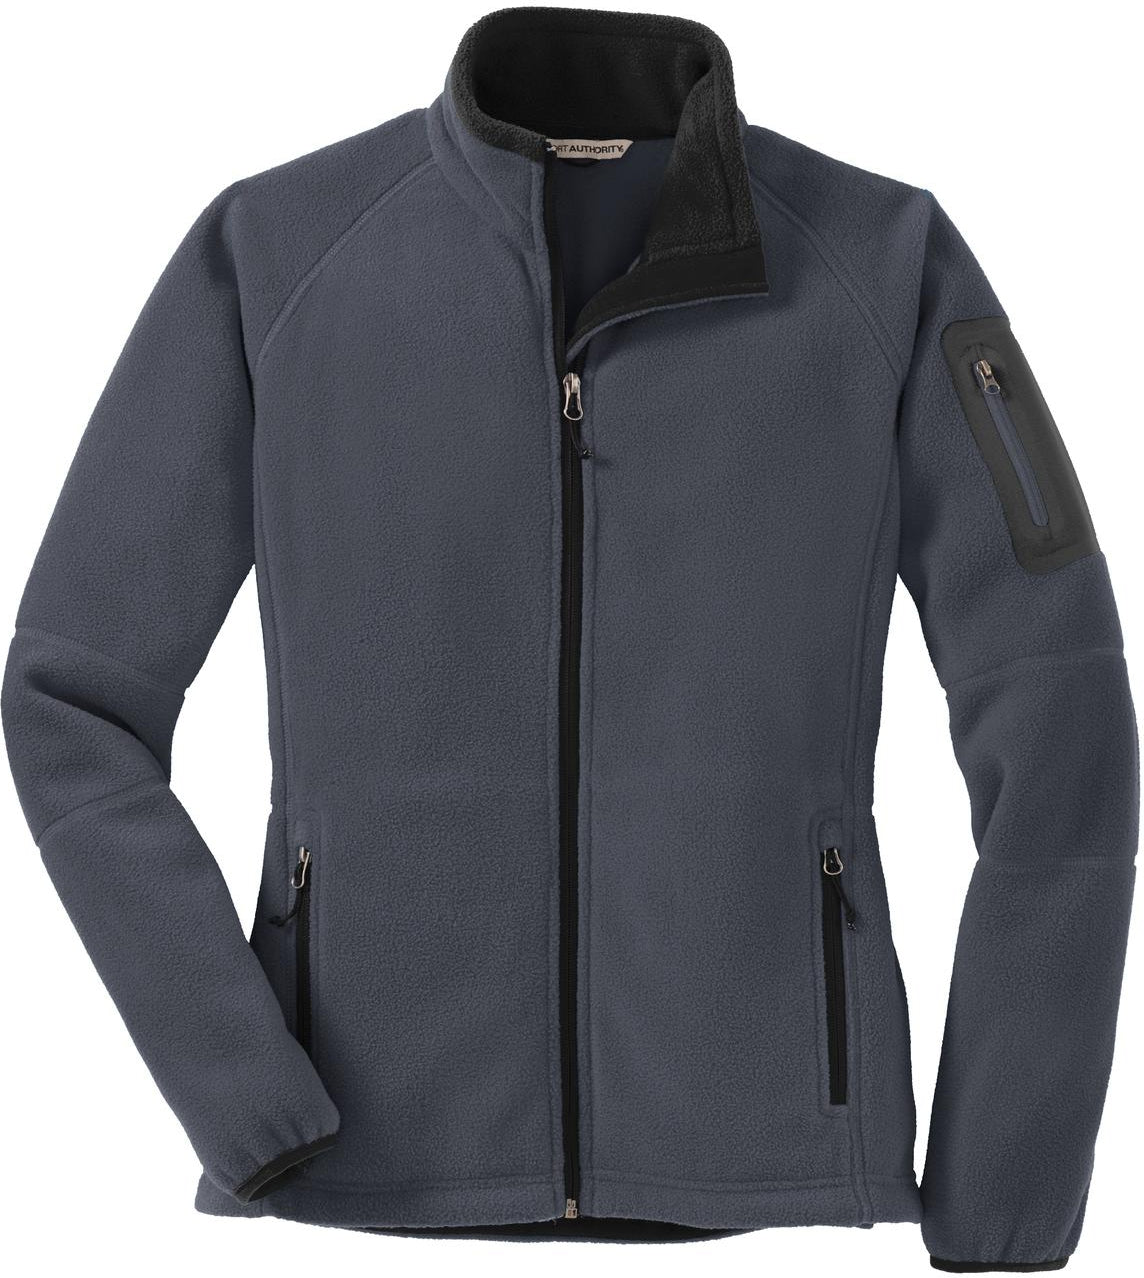 Port Authority-Ladies Enhanced Value Fleece Jacket-XS-Battleship Grey/Black-Thread Logic